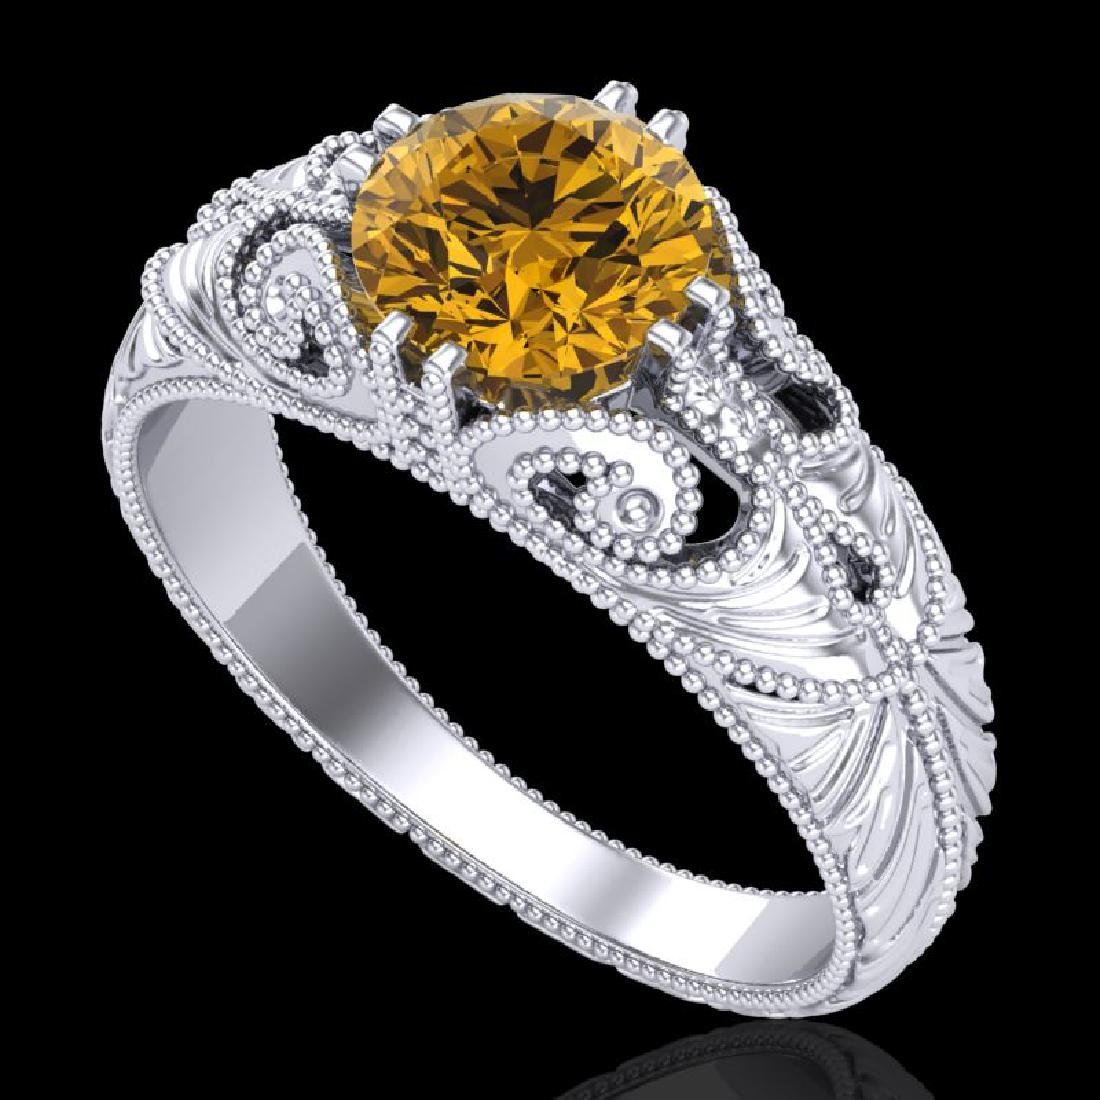 1 CTW Intense Fancy Yellow Diamond Engagement Art Deco